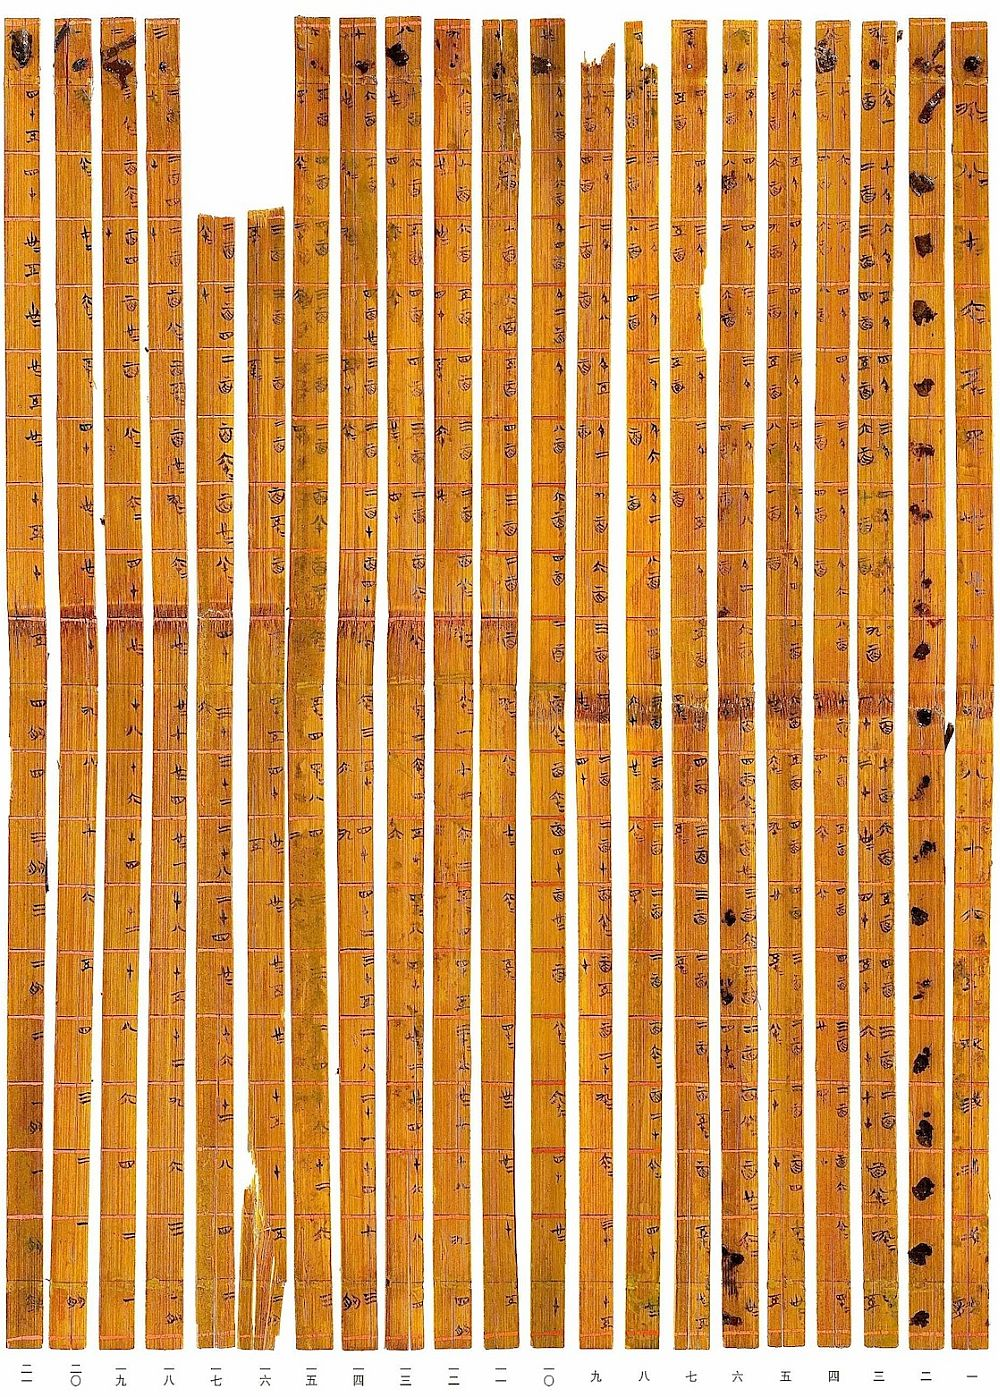 Chinese Multiplication Table Bamboo Strips